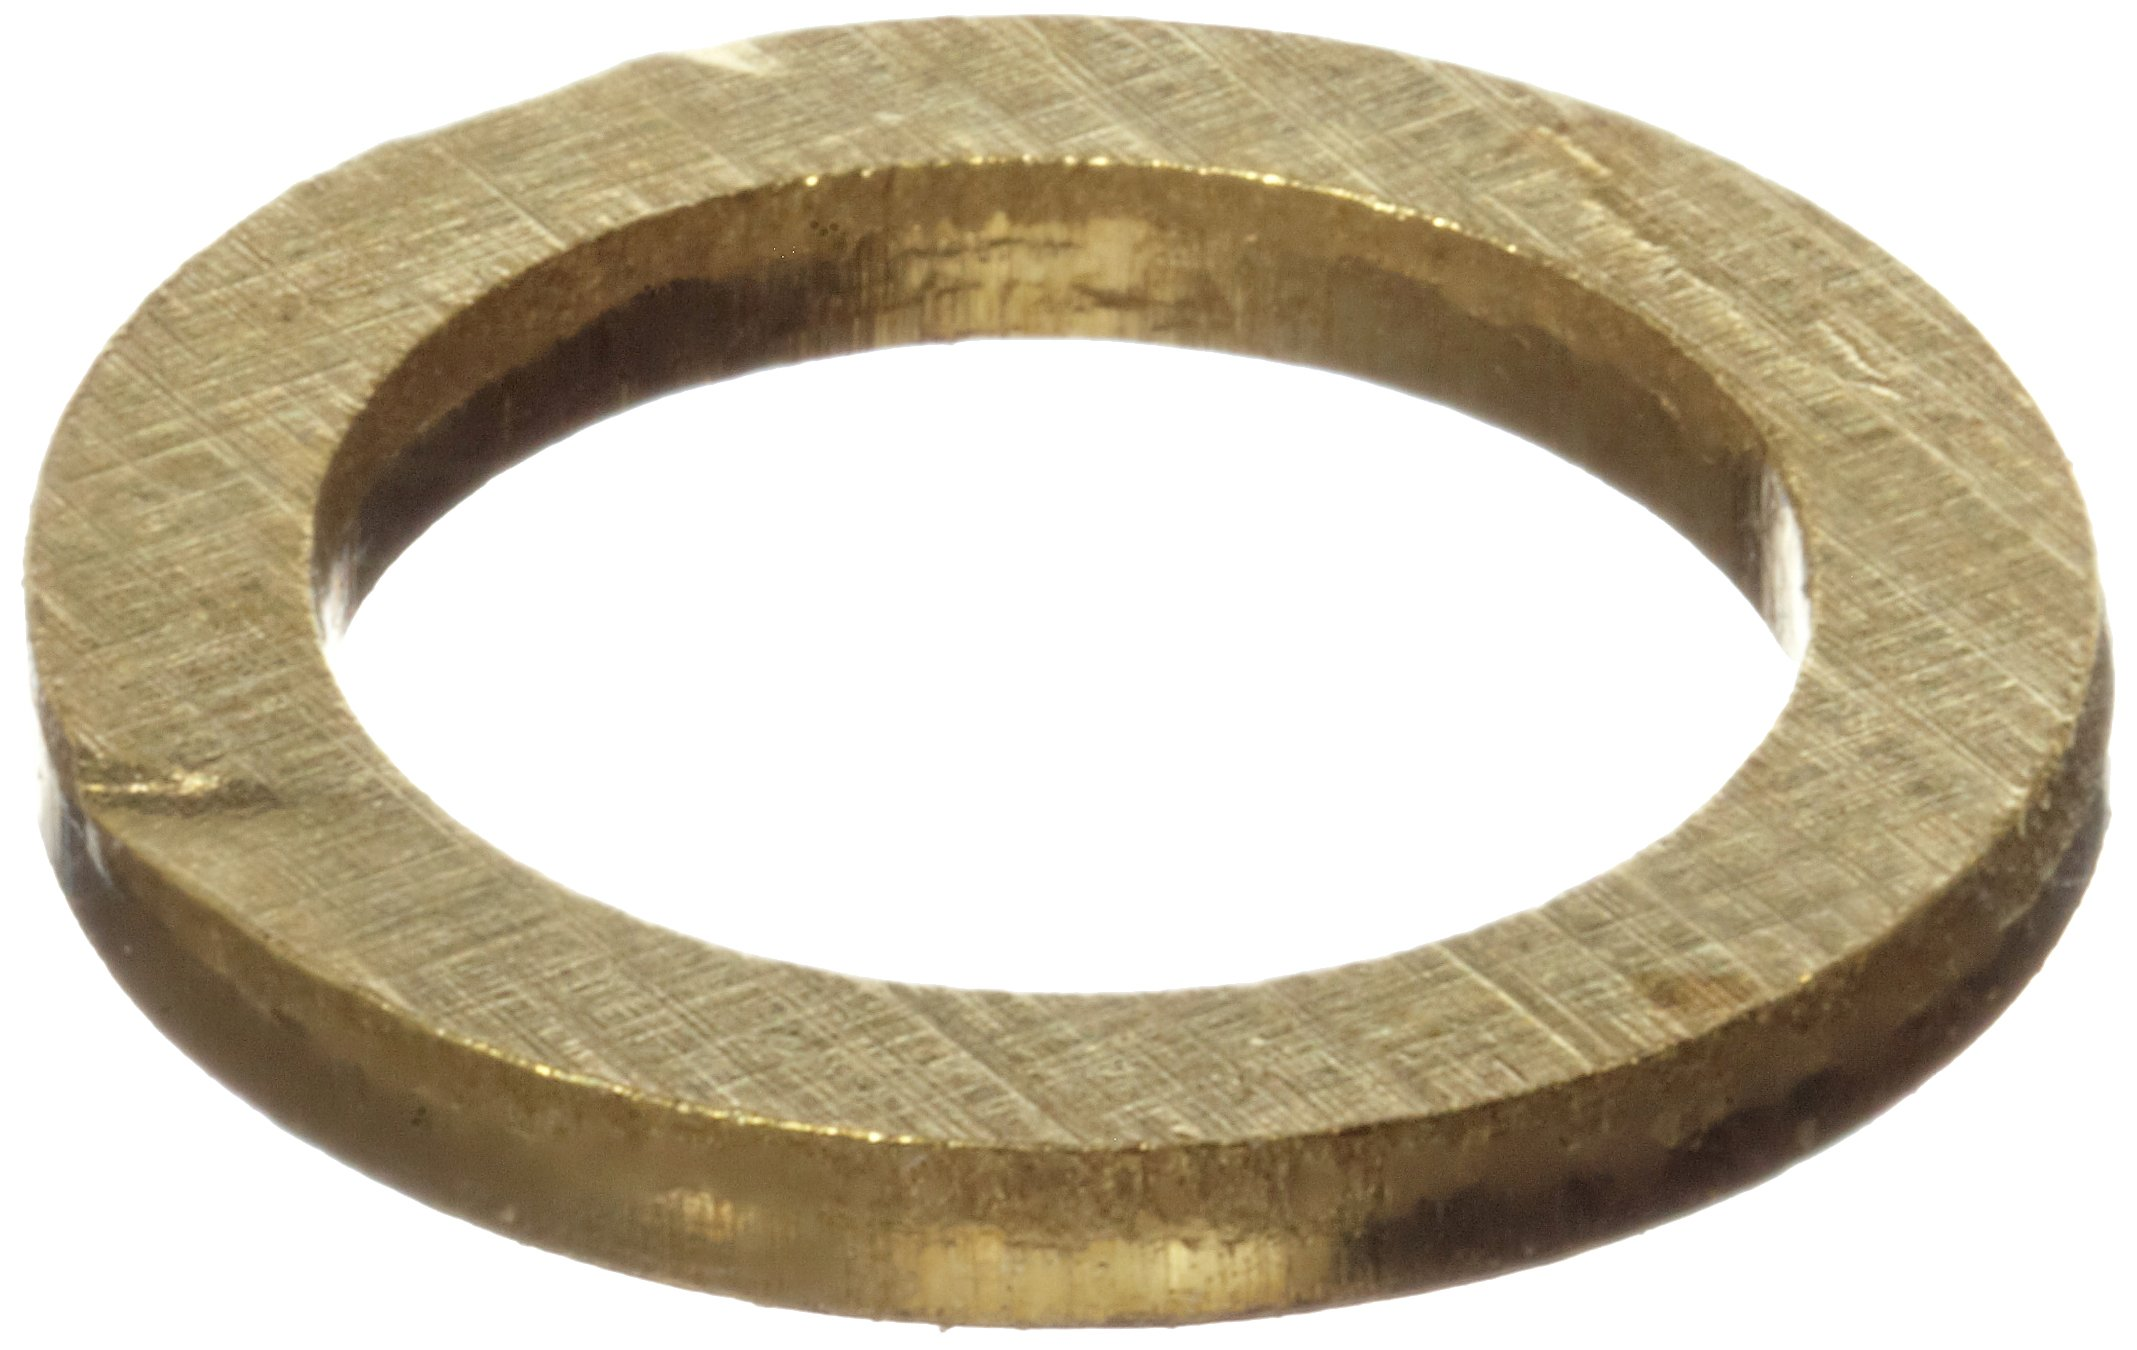 260 Brass Round Shim, Unpolished (Mill) Finish, H02/H04 Temper, ASTM B36, 0.003'' Thickness, 0.503'' ID, 0.623'' OD (Pack of 10)